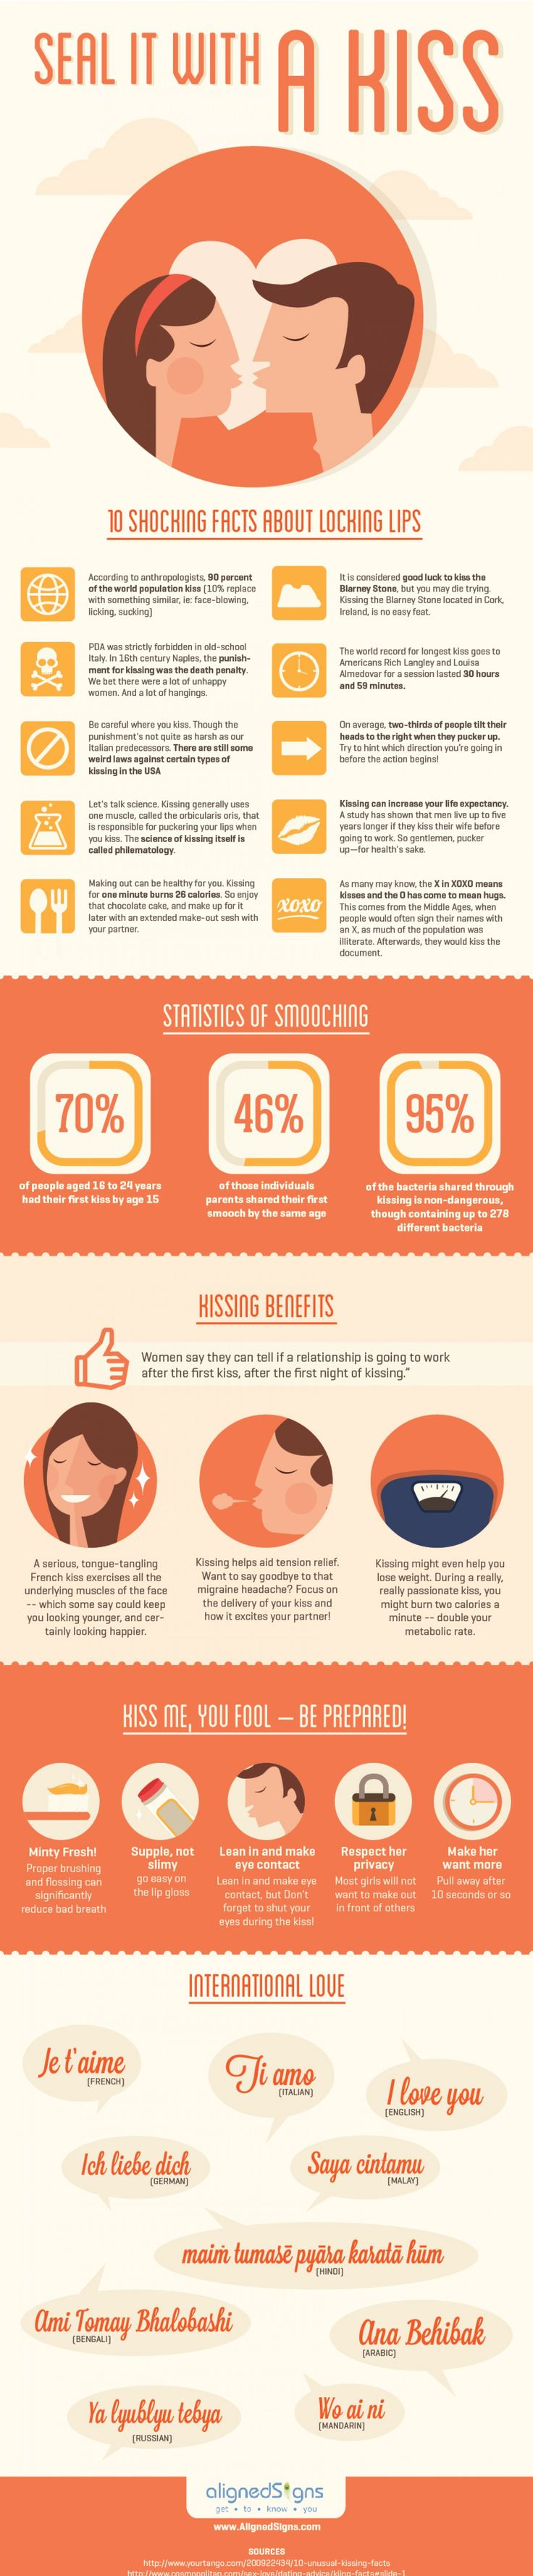 Seal It With a Kiss Infographic